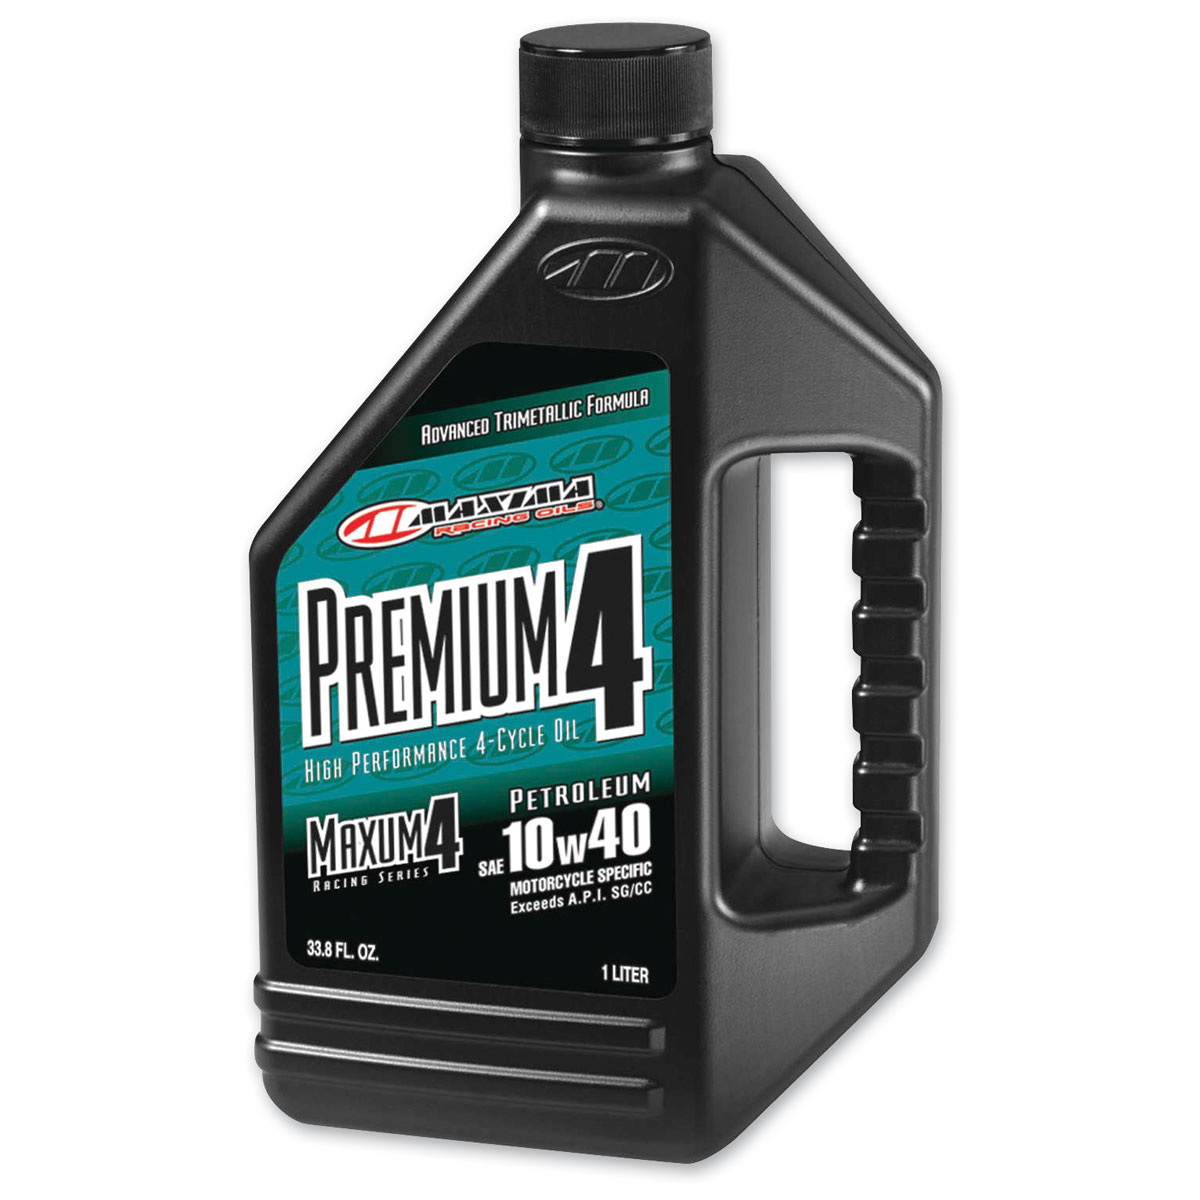 Maxima Maxum4 Premium 10W40 Engine Oil Gallon